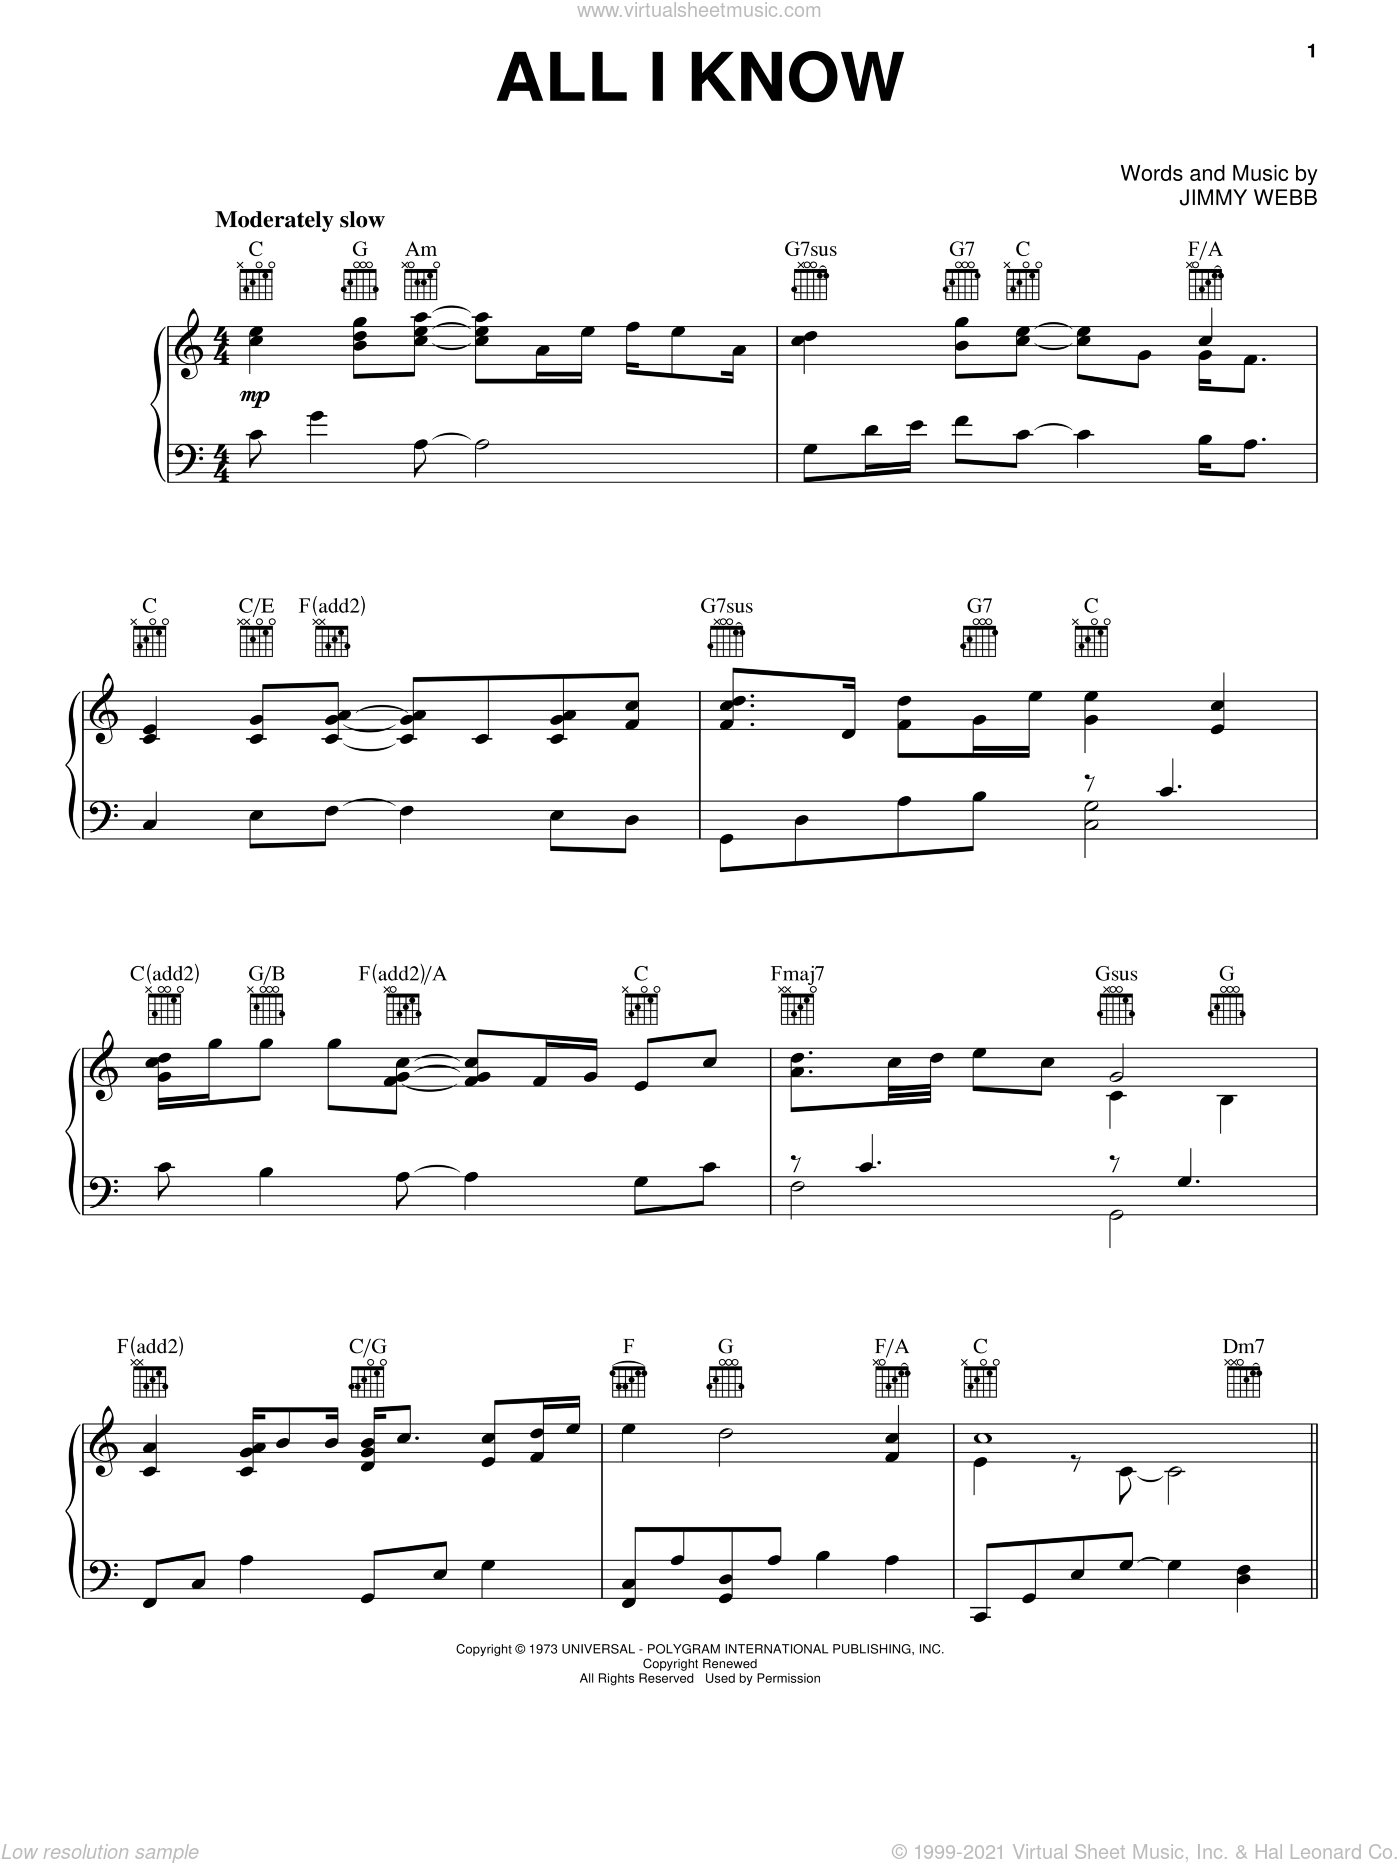 All I Know sheet music for voice, piano or guitar by Jimmy Webb, intermediate skill level